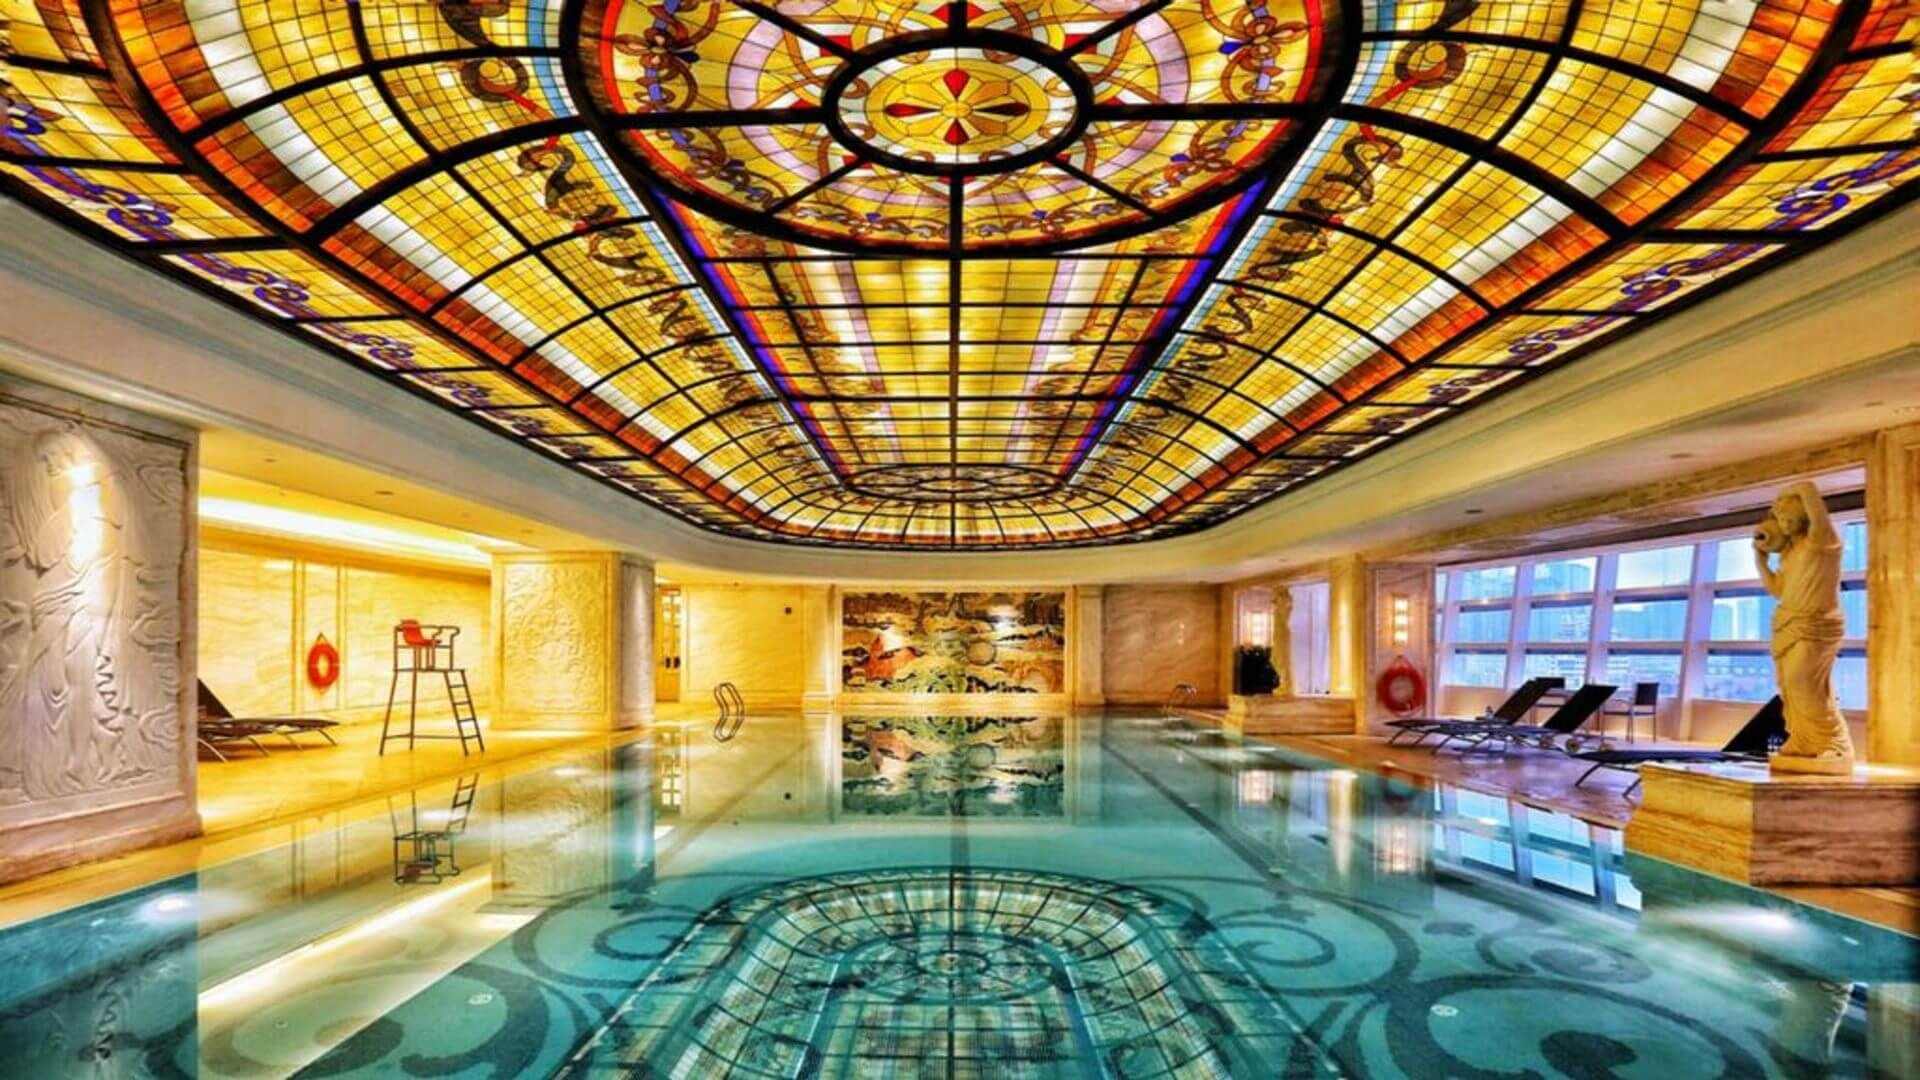 #Conrad Dalian #Dalian #Asia #China #Hotels #travel #travelblogger #travelgram #travelguide #travels #travelling #travelblog #traveladdict #traveladikkt #beautifuldestinations #bucketlist #luxury #luxurylifestyle #luxurytravel #luxurydestinations #lifestyle #lifestyleblogger #beautifulplaces #beautifulplace #beautiful #beautifuldestination